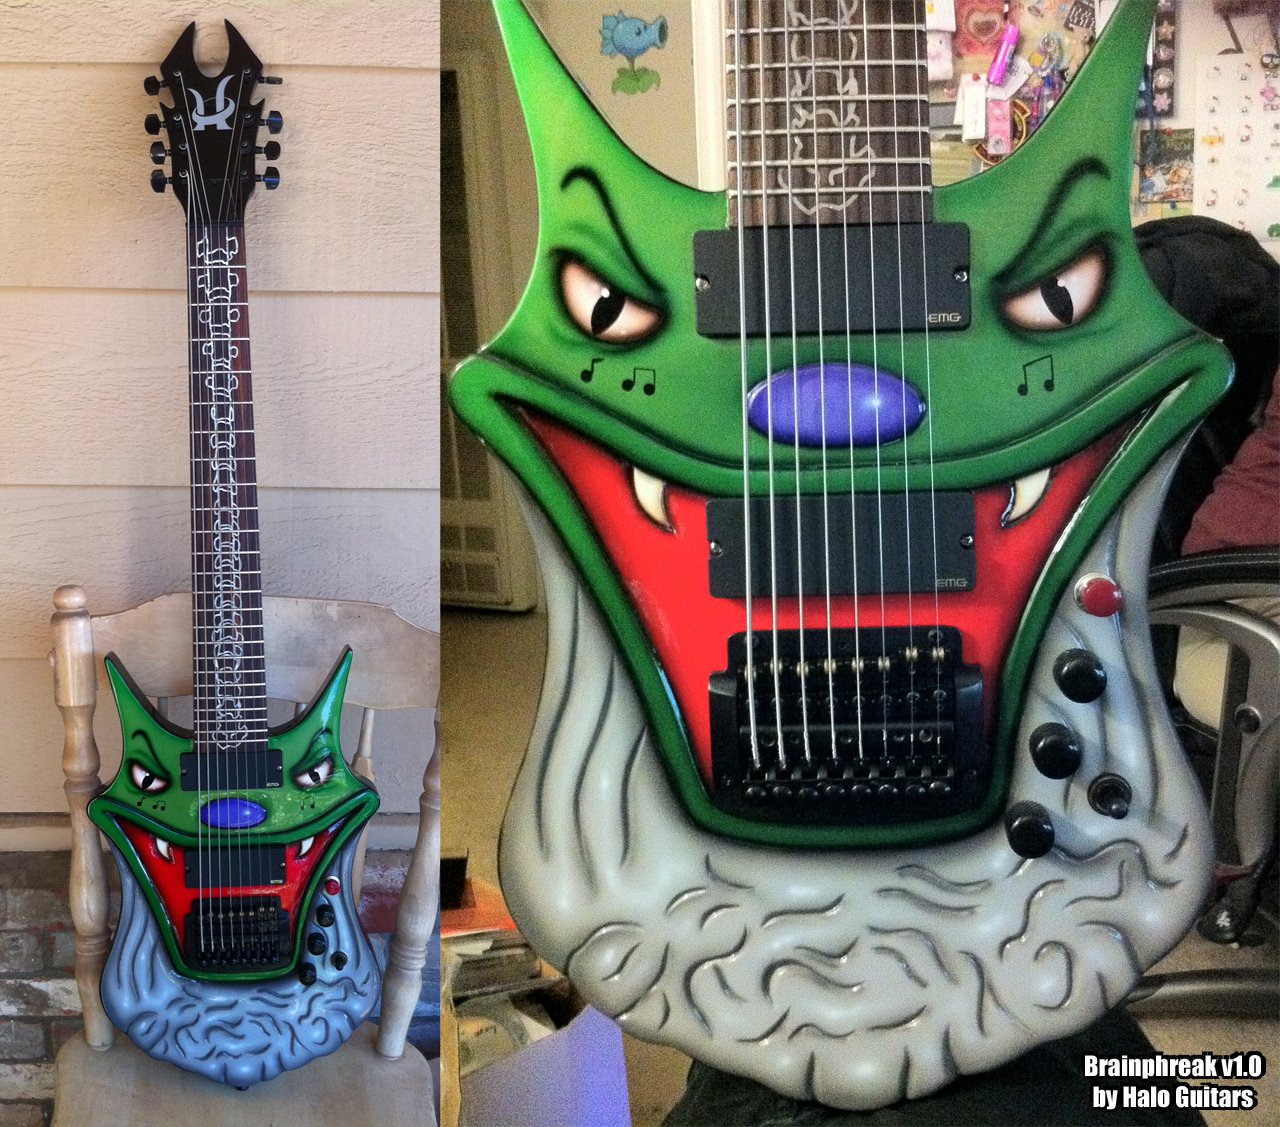 what 39 s with brainphreak new brainphreak custom 8 string from halo guitars. Black Bedroom Furniture Sets. Home Design Ideas